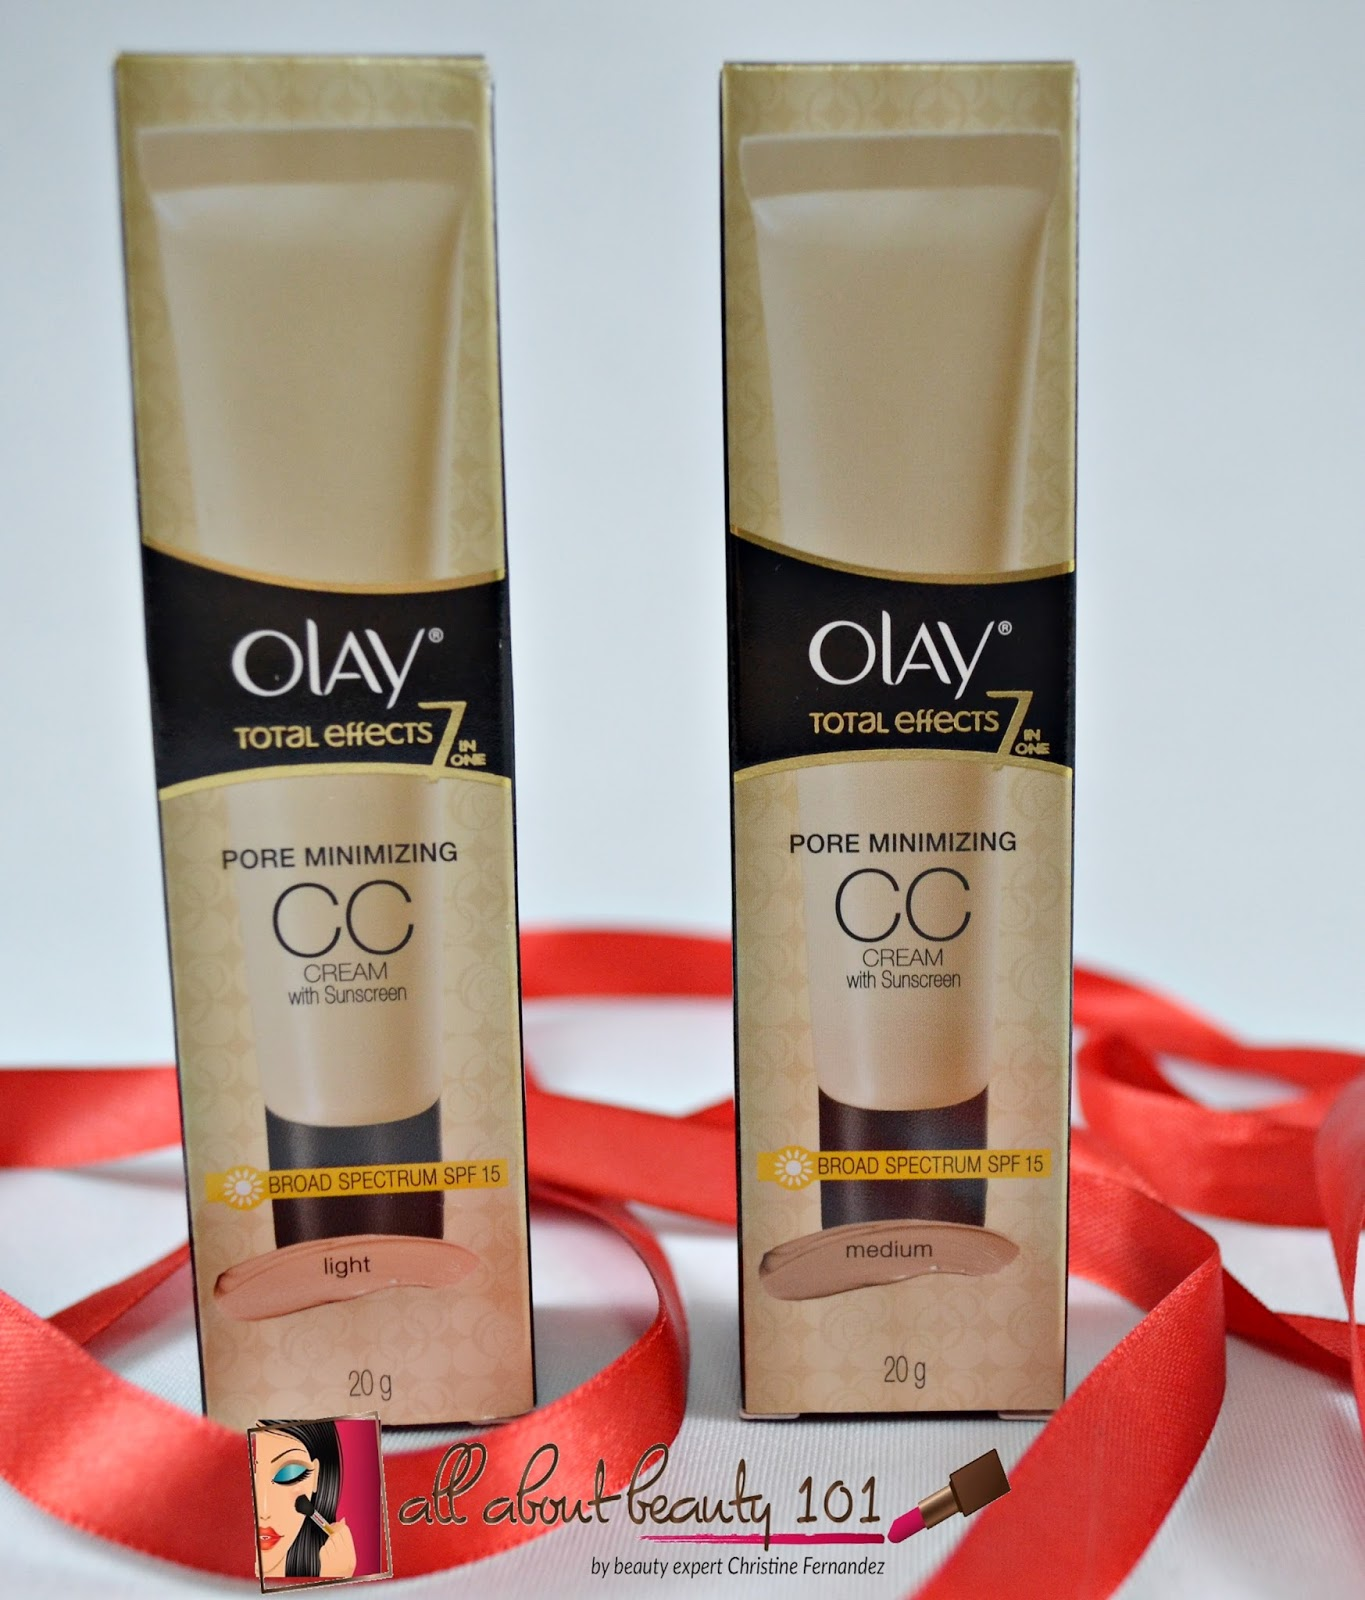 Olay Total Effect Cc Spf 15 Ligth 20gr Spec Dan Daftar Harga Effects Day Cream Normal 8g Product Review Olays 7 In 1